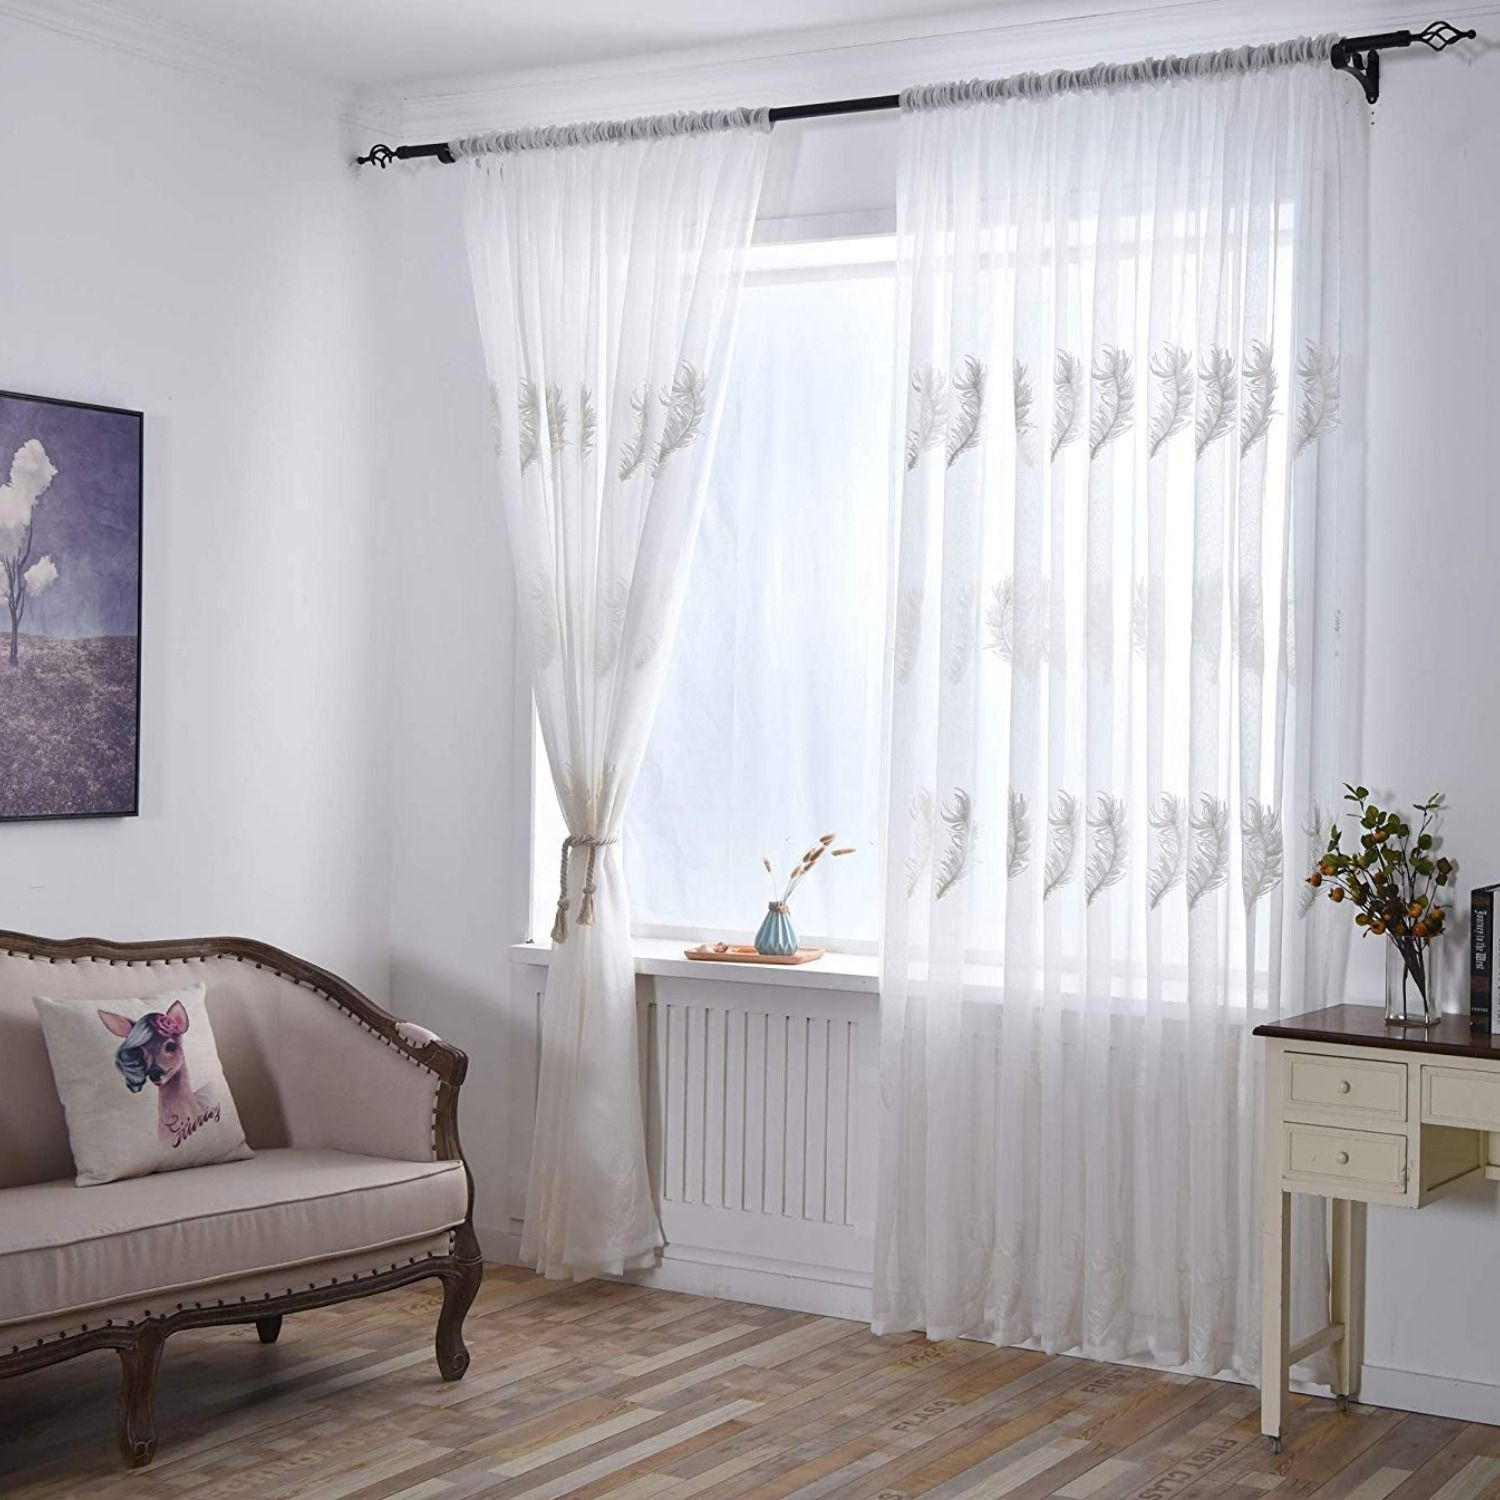 Modern Feather Embroidered Sheer Curtains Cotton Linen Grommet Curtains For Bedroom 96 Inches Long Rod Pocket 2 Panels Curtains Sheer Curtains Grommet Curtains